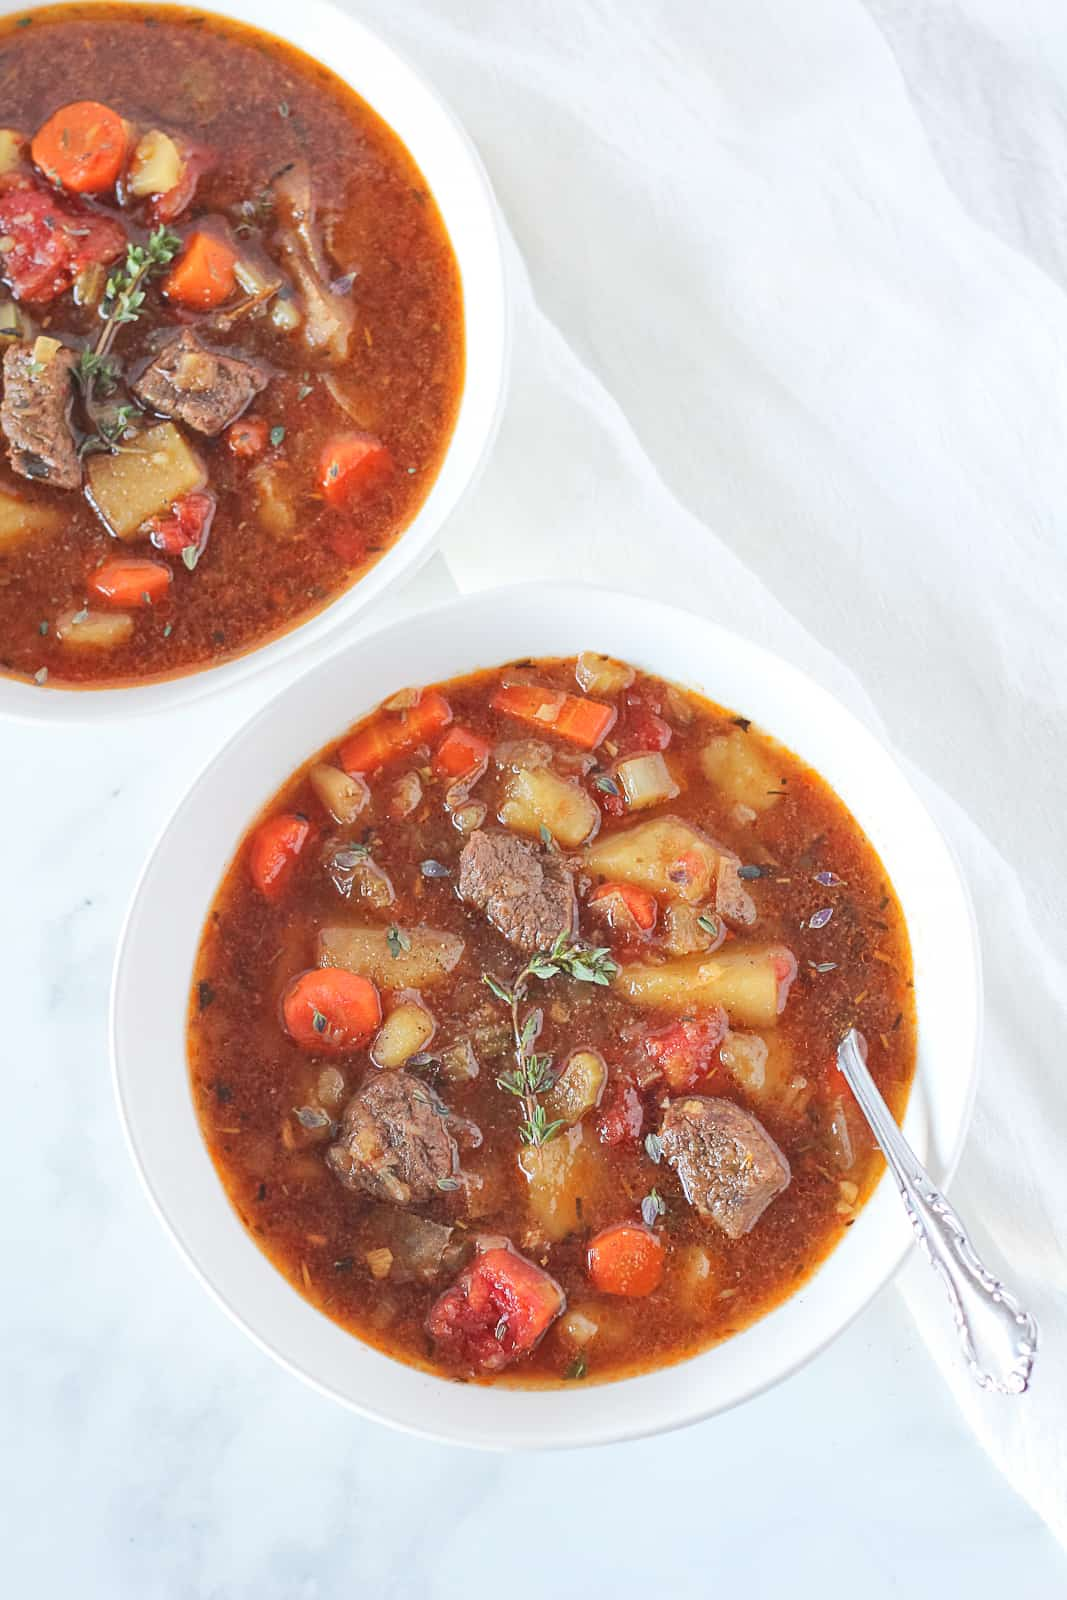 Venison stew in two white bowls with a spoon in one bowl.